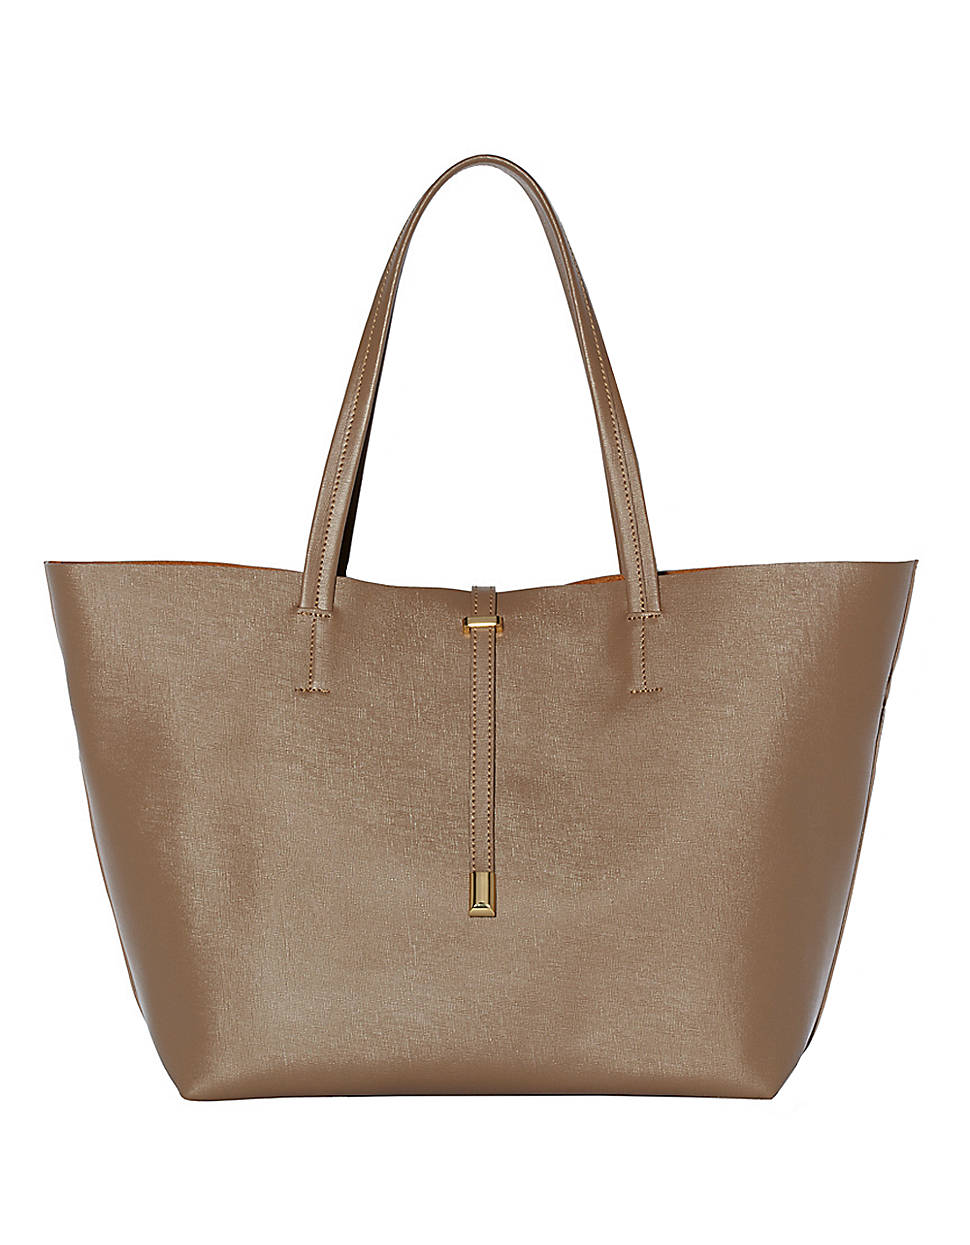 Vince Camuto Leila Leather Tote Bag In Brown Gold Lyst